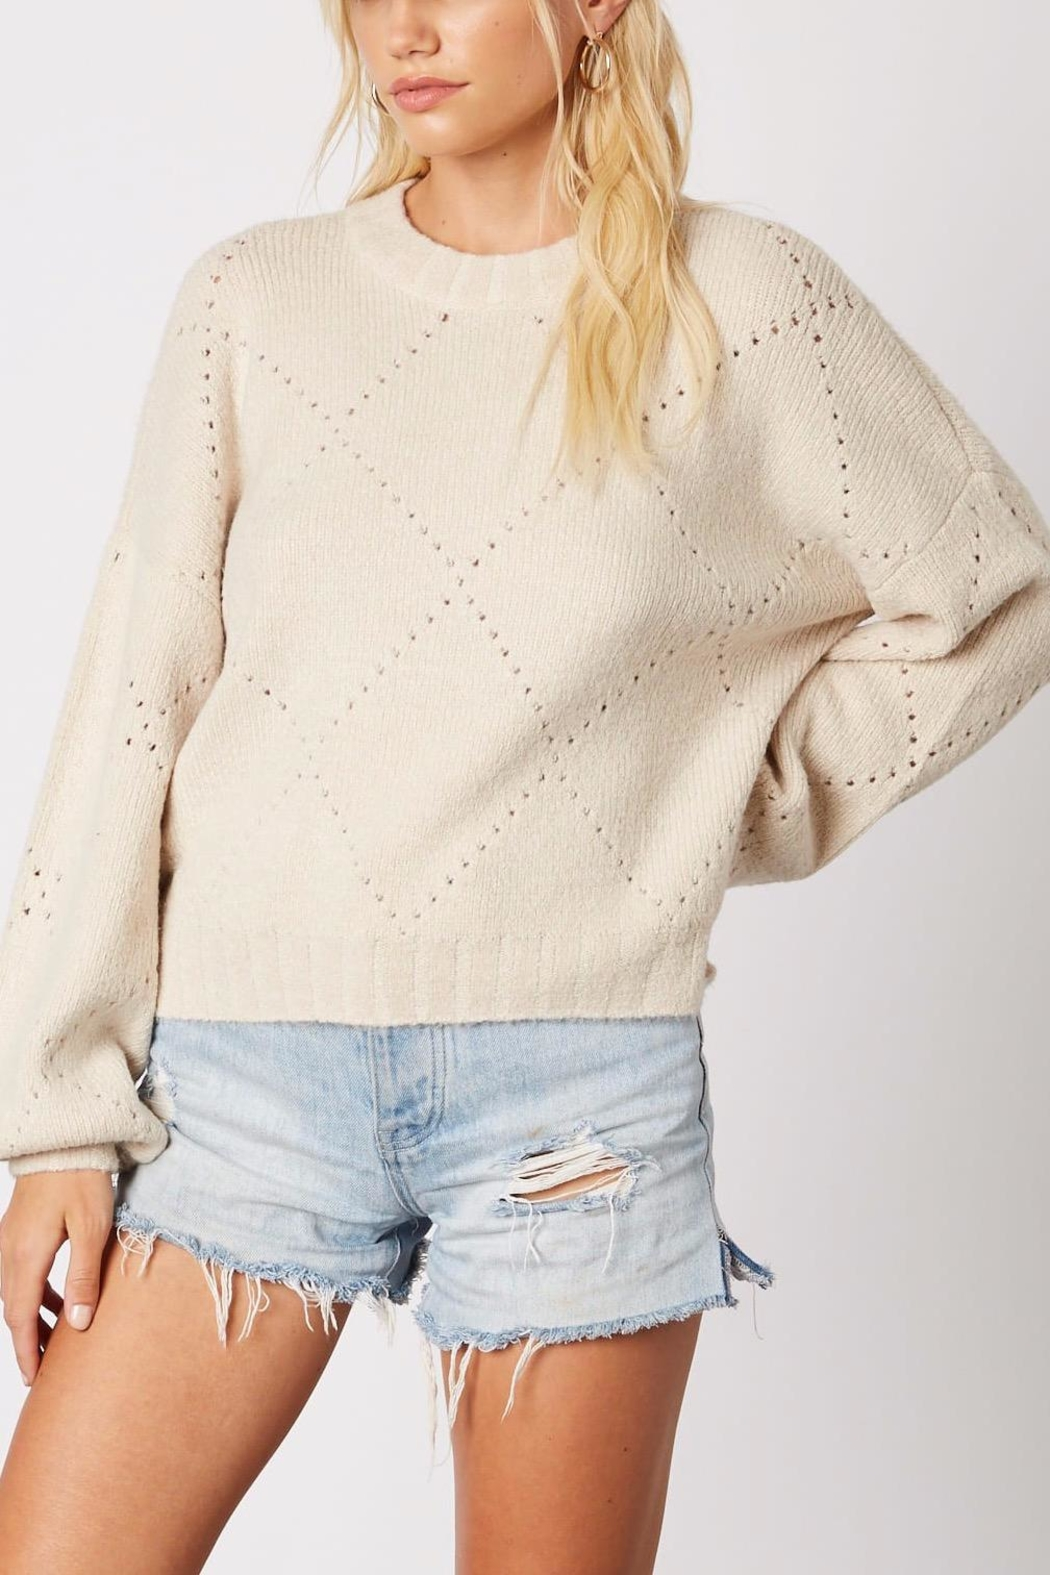 Cotton Candy LA Cream Pointelle Sweater - Front Full Image